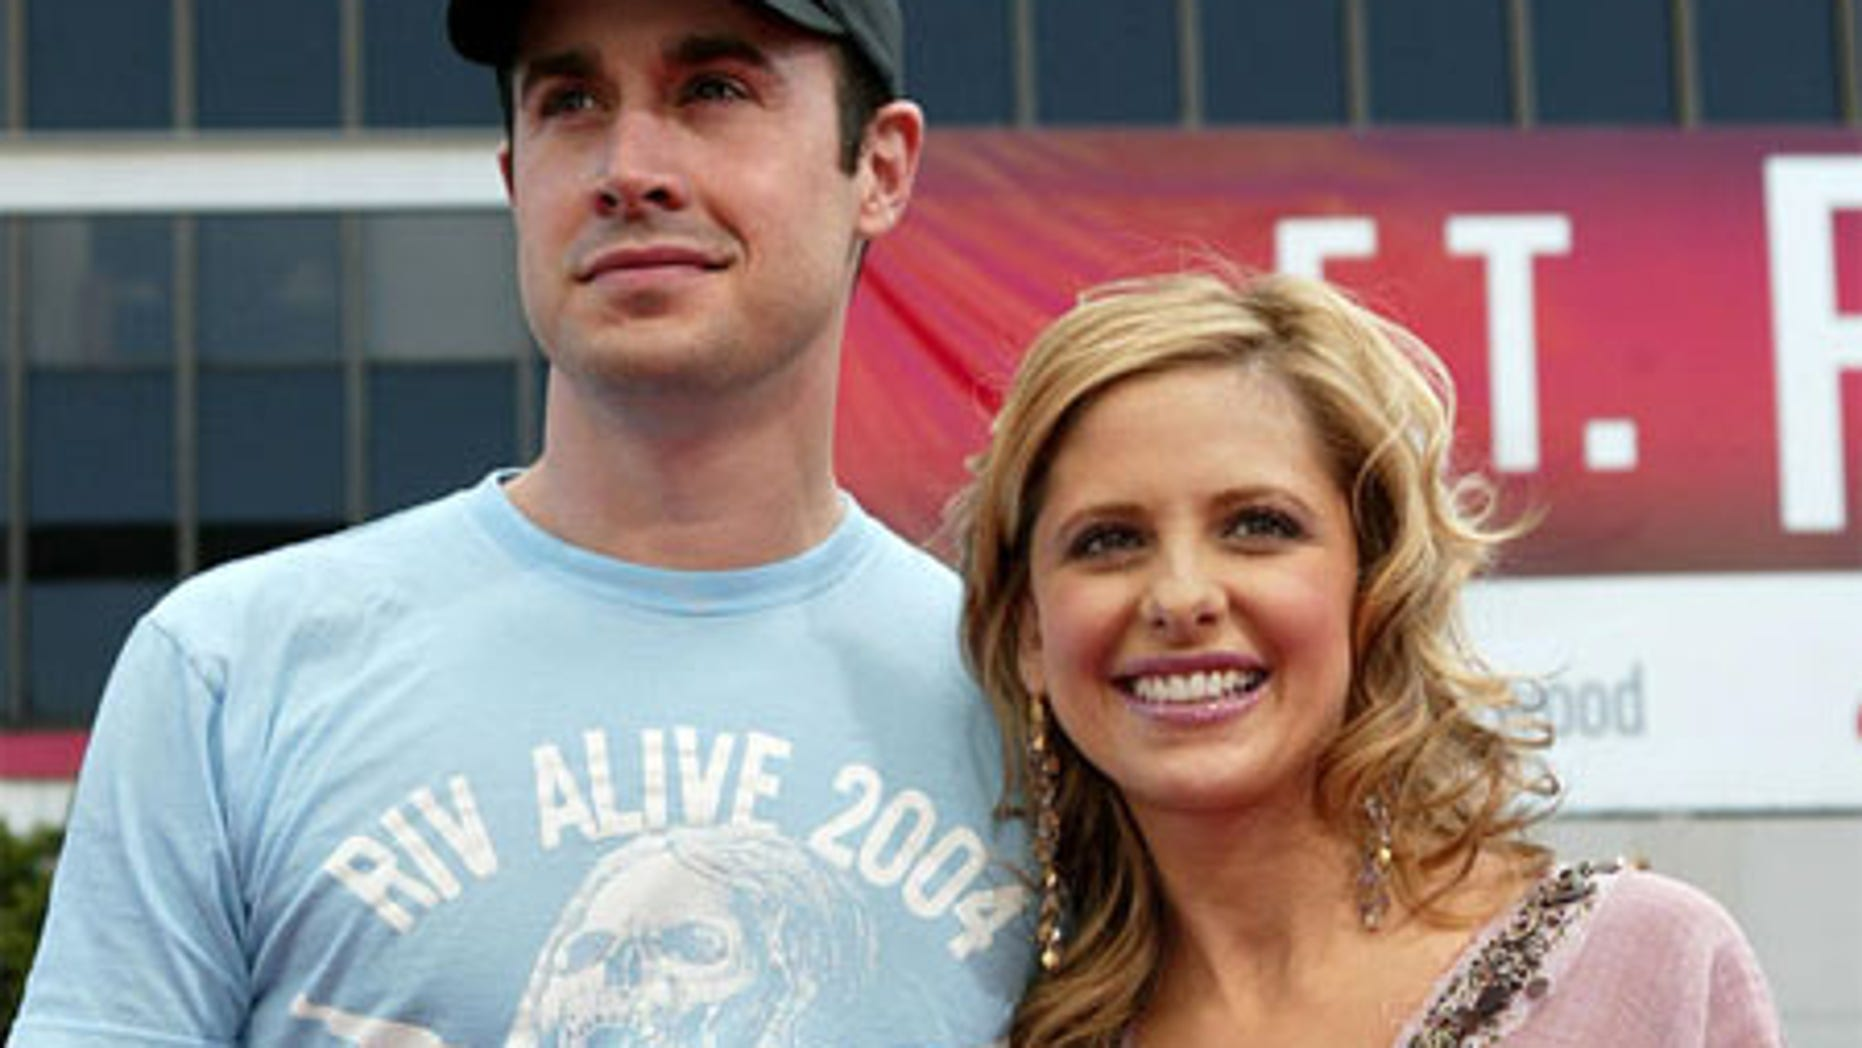 Freddie Prinze Jr. and Sarah Michelle Geller tied the knot in 2002.